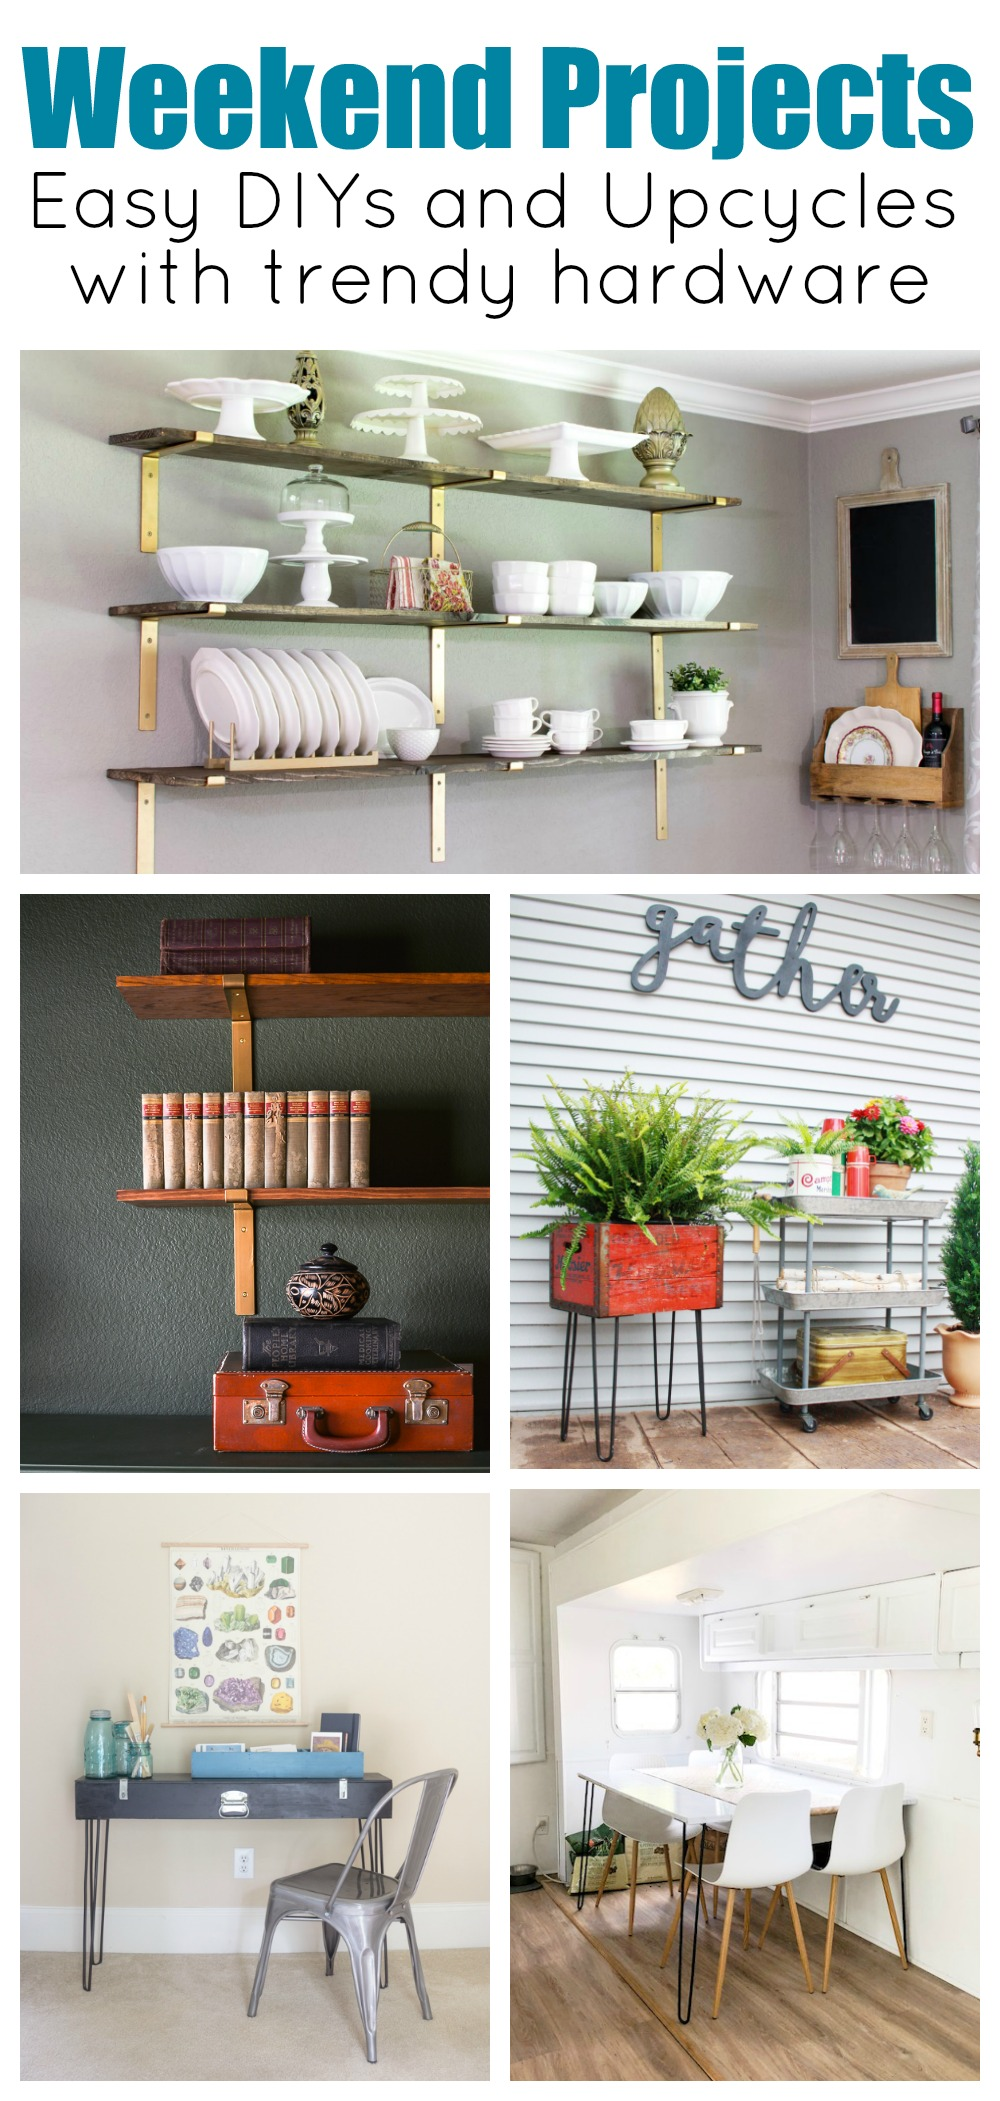 Collage photo showing a dining room shelves filled with white dishes, open bookshelves on a moody green wall, an outdoor space with a hairpin leg planter and rolling cart, hairpin leg desk and a camper dining space with a hairpin leg table.